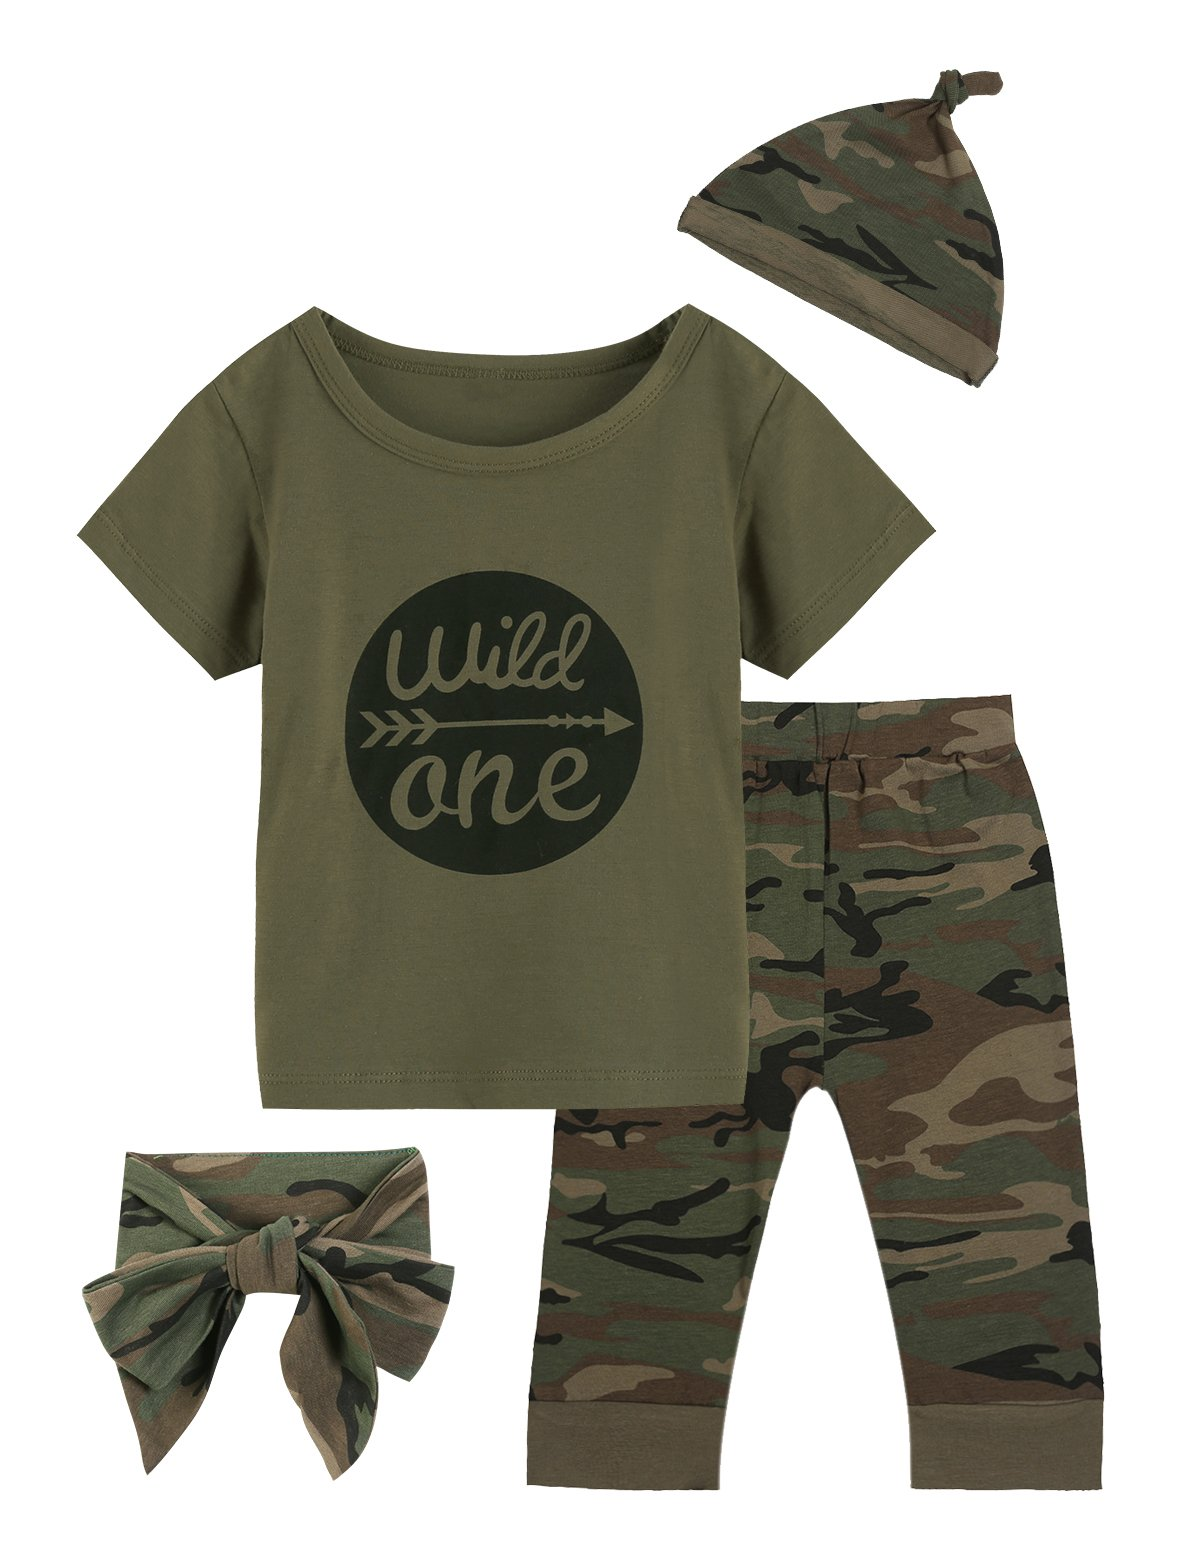 Baby Boys Girls Outfit Long Set 2PCS Camouflage Letter Print Shirt with Pants (Wild One Short Camouflage, 12-18 Months)